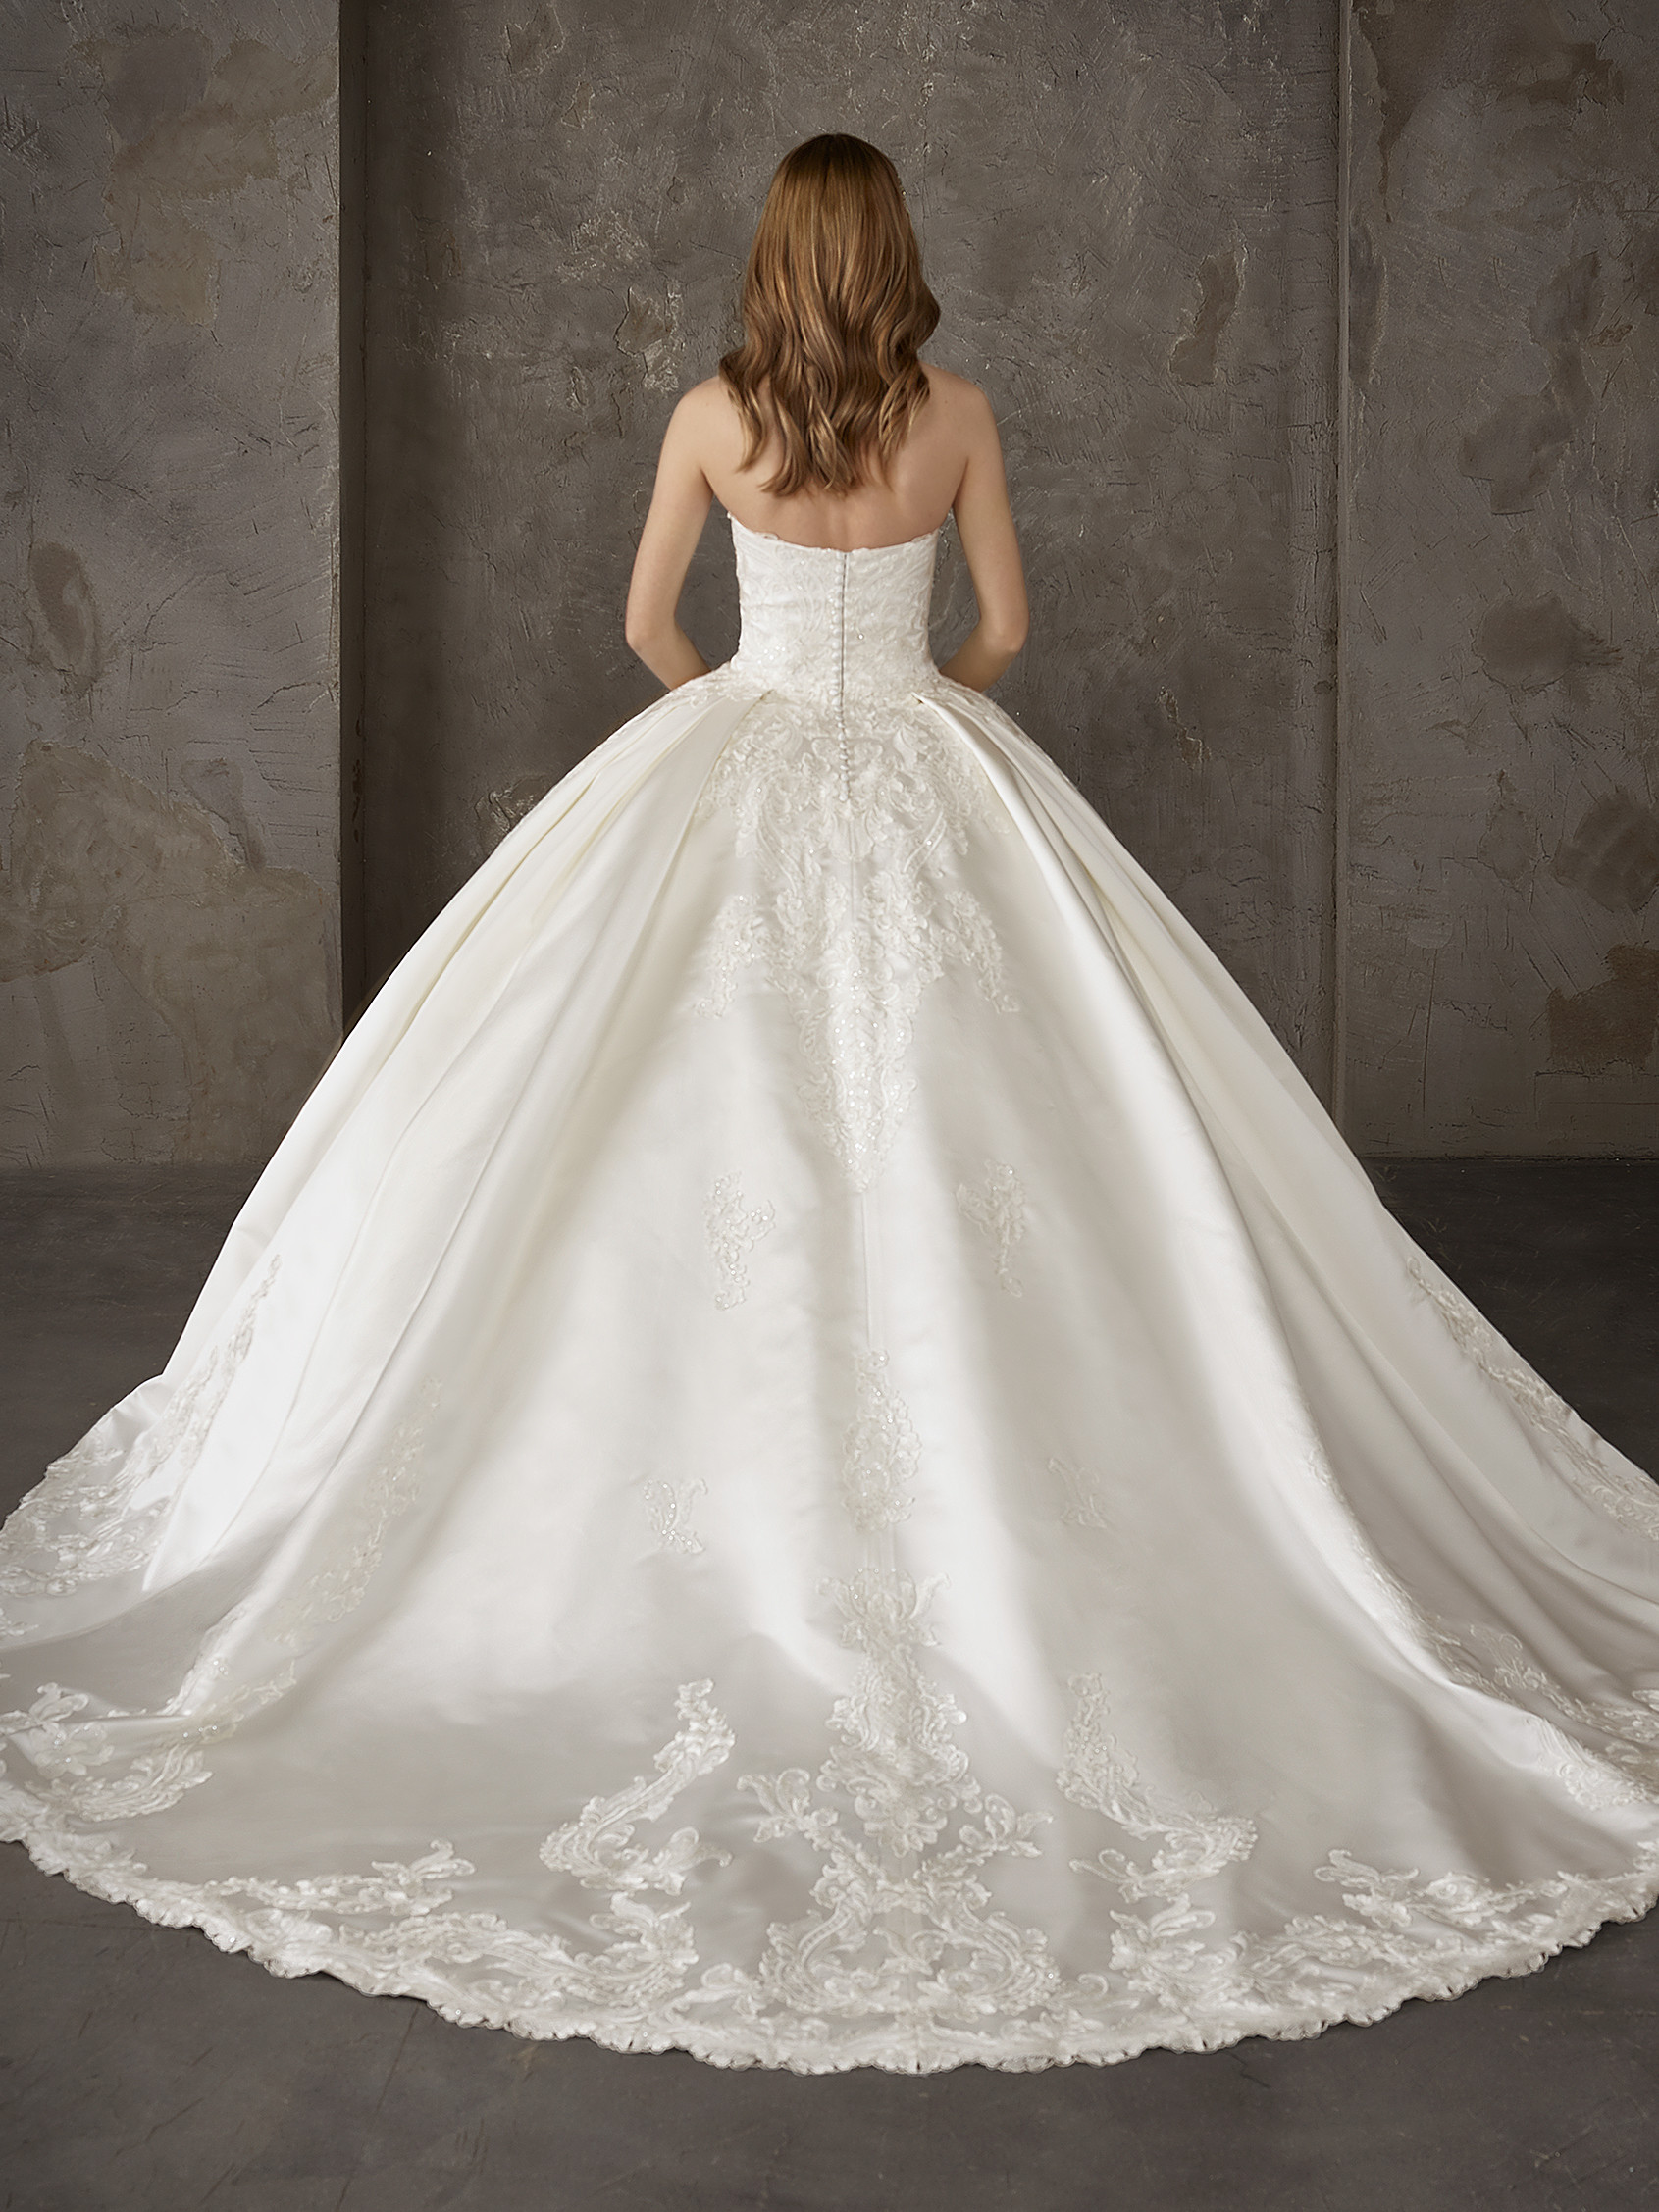 Sophisticated Princess Wedding Dress With Flowers And Beading